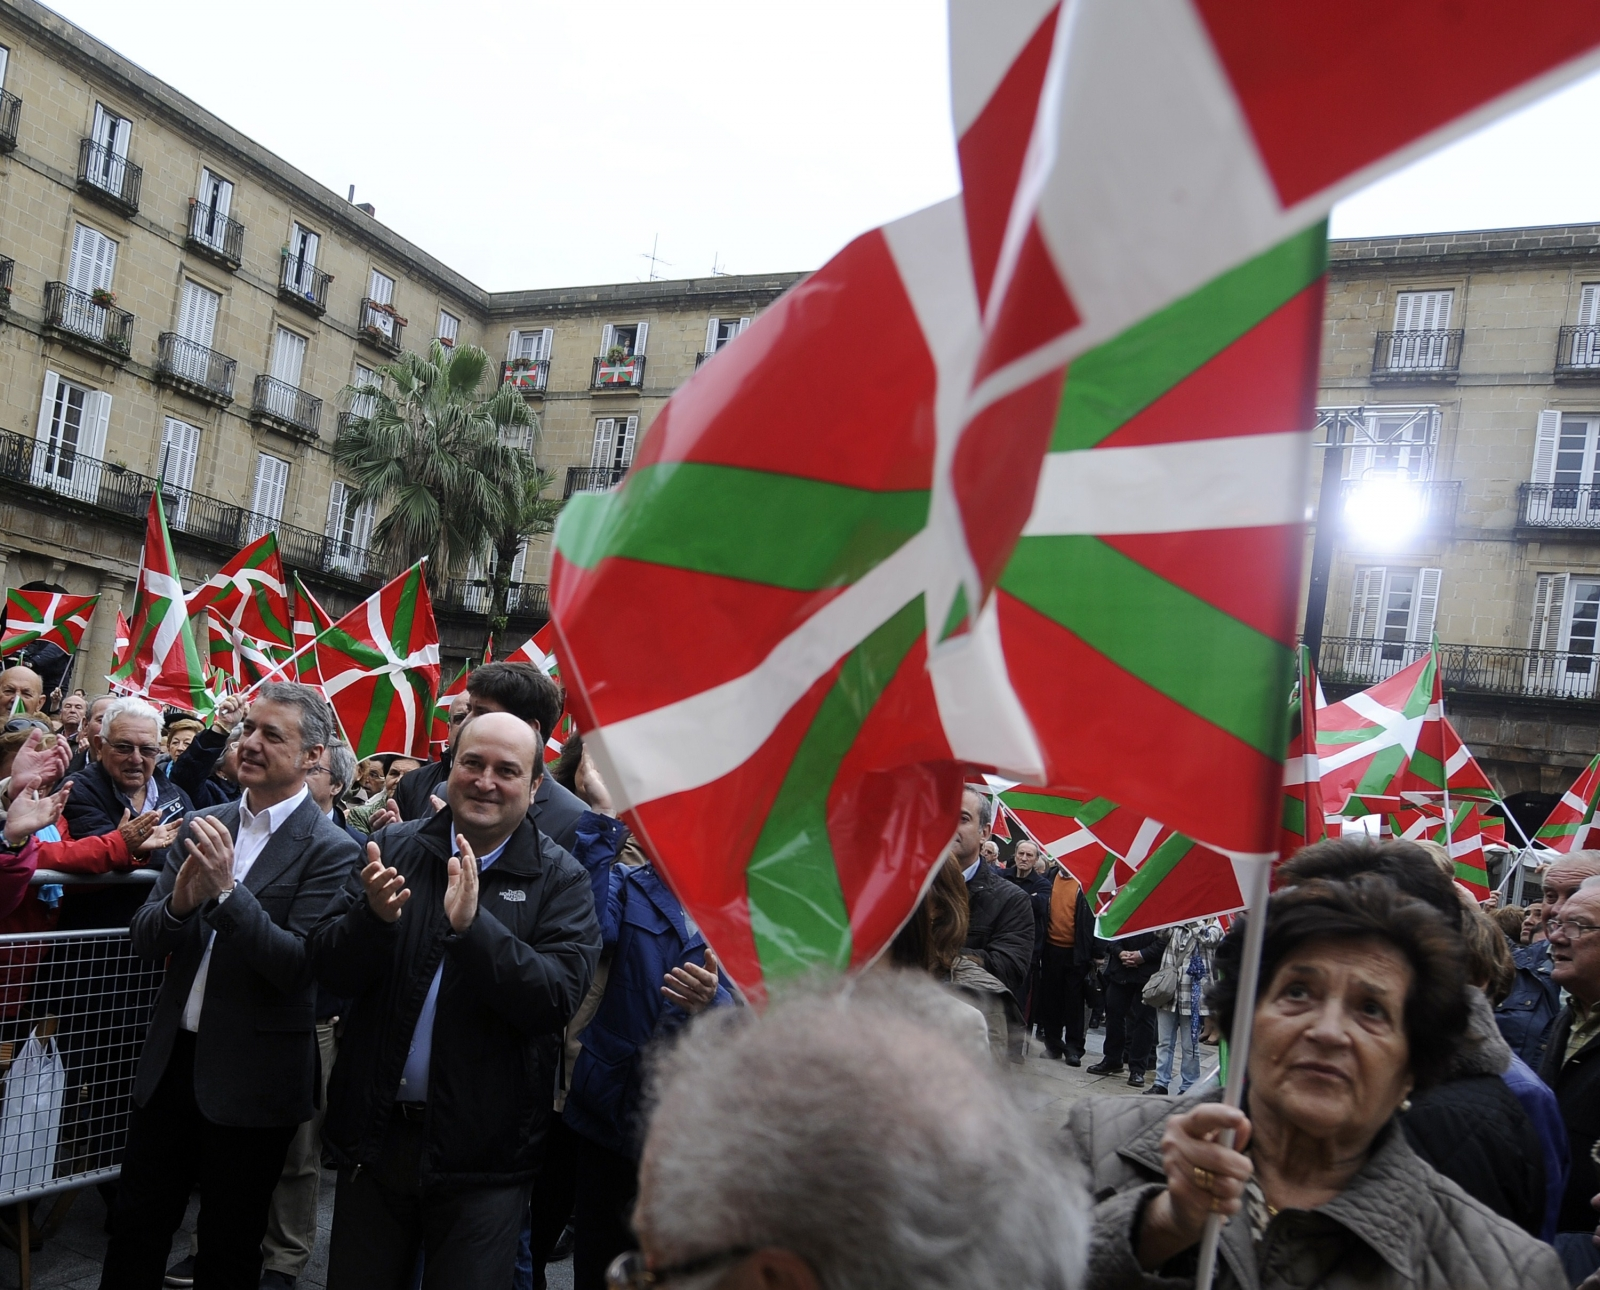 Spain's Regional elections reaffirm Rajoy in Galicia